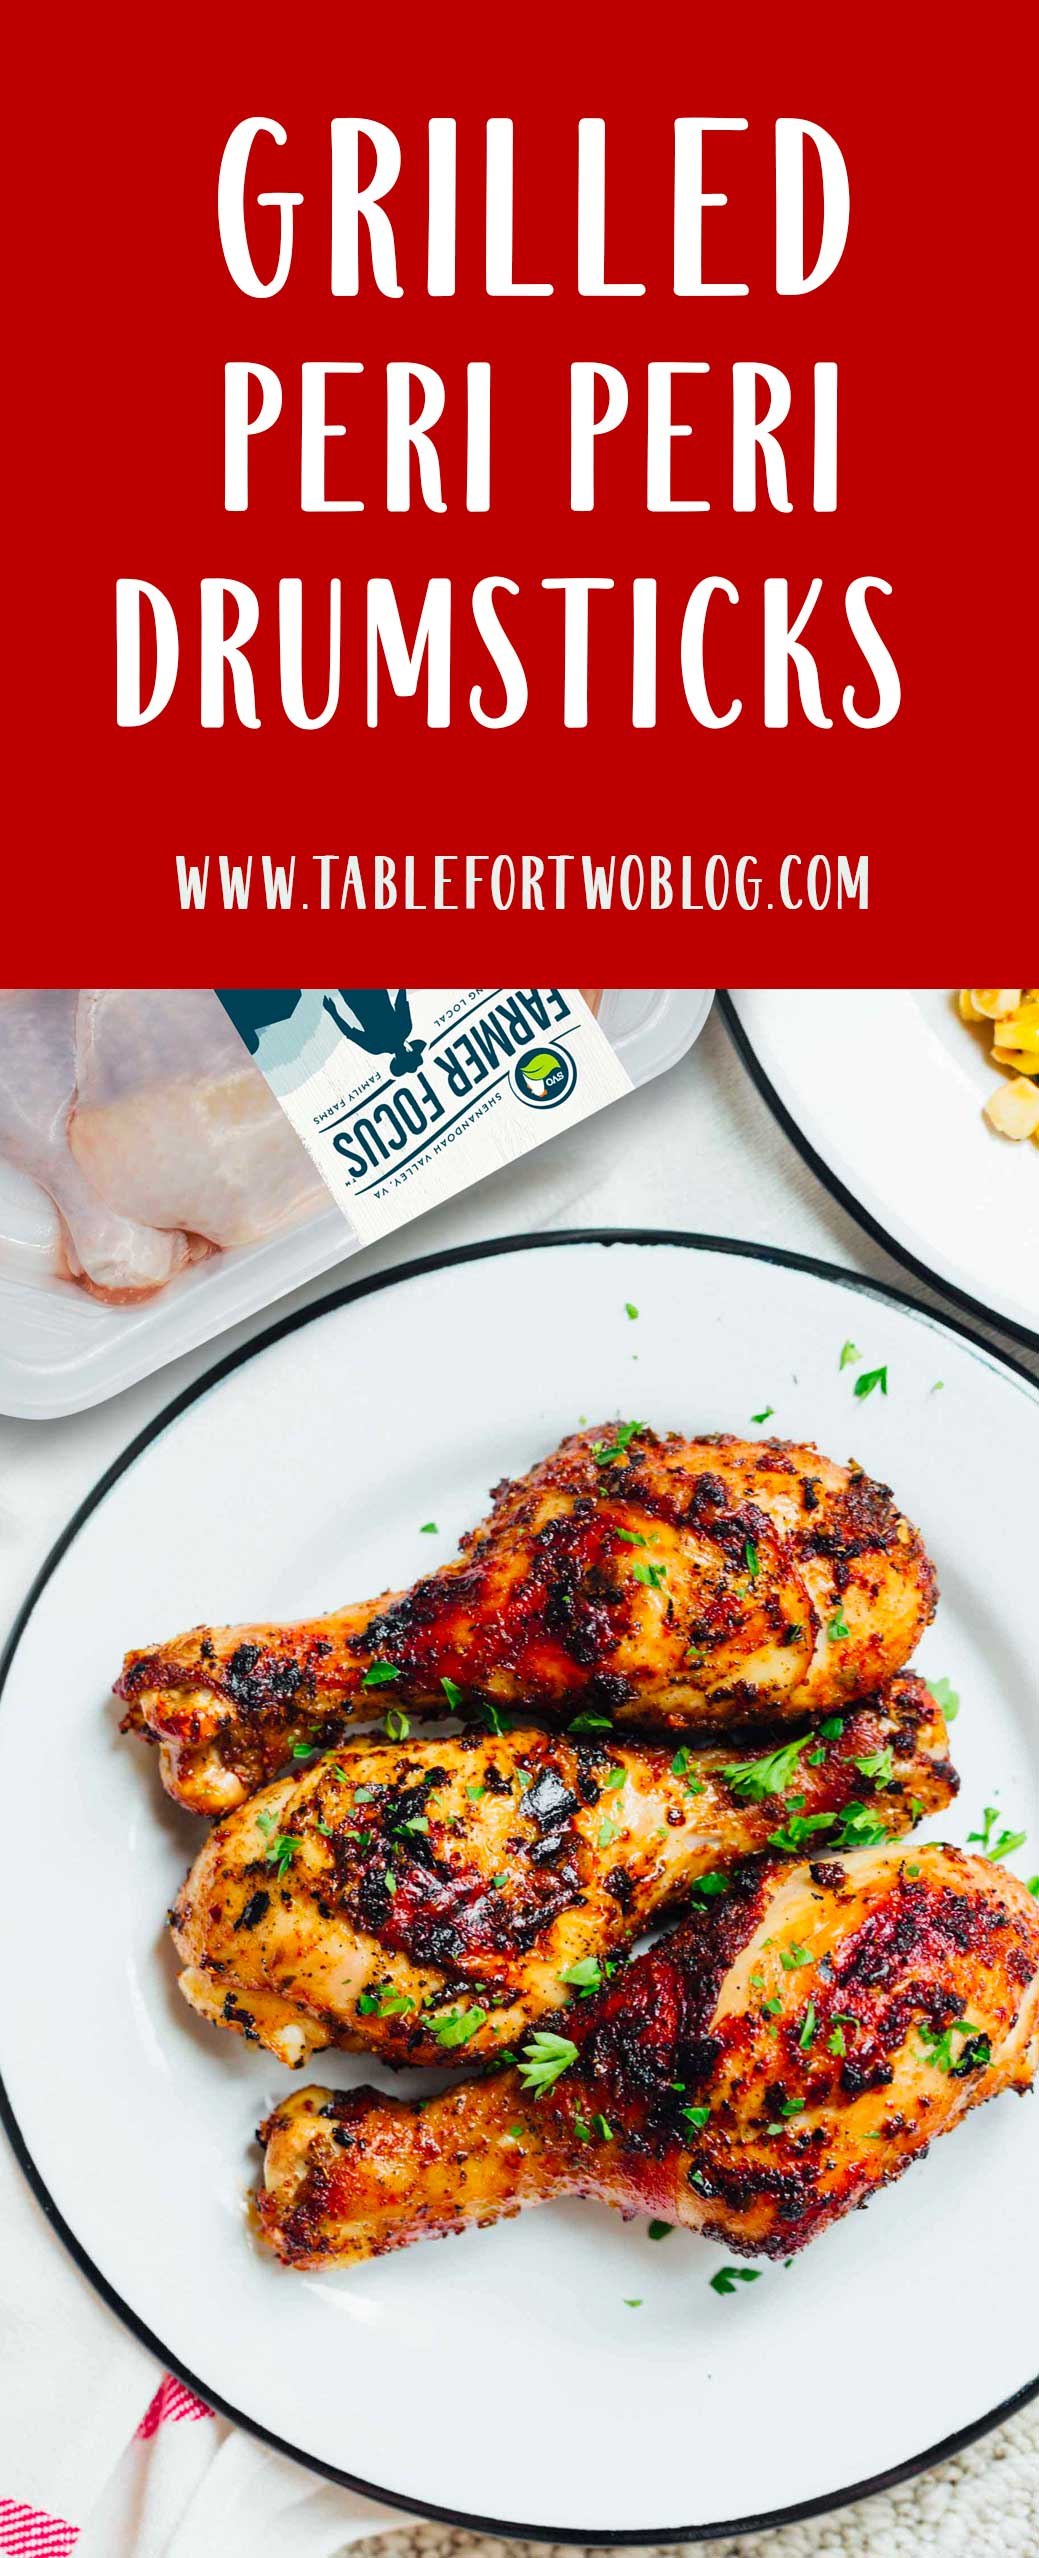 Grilled peri peri chicken drumsticks are the perfect addition to your summer grilling menu! They're easy to prepare and they are packed with flavor! #chicken #chickendinner #svorganic #periperi #drumsticks #chickenrecipes #grilling #grilledchicken #grillrecipes